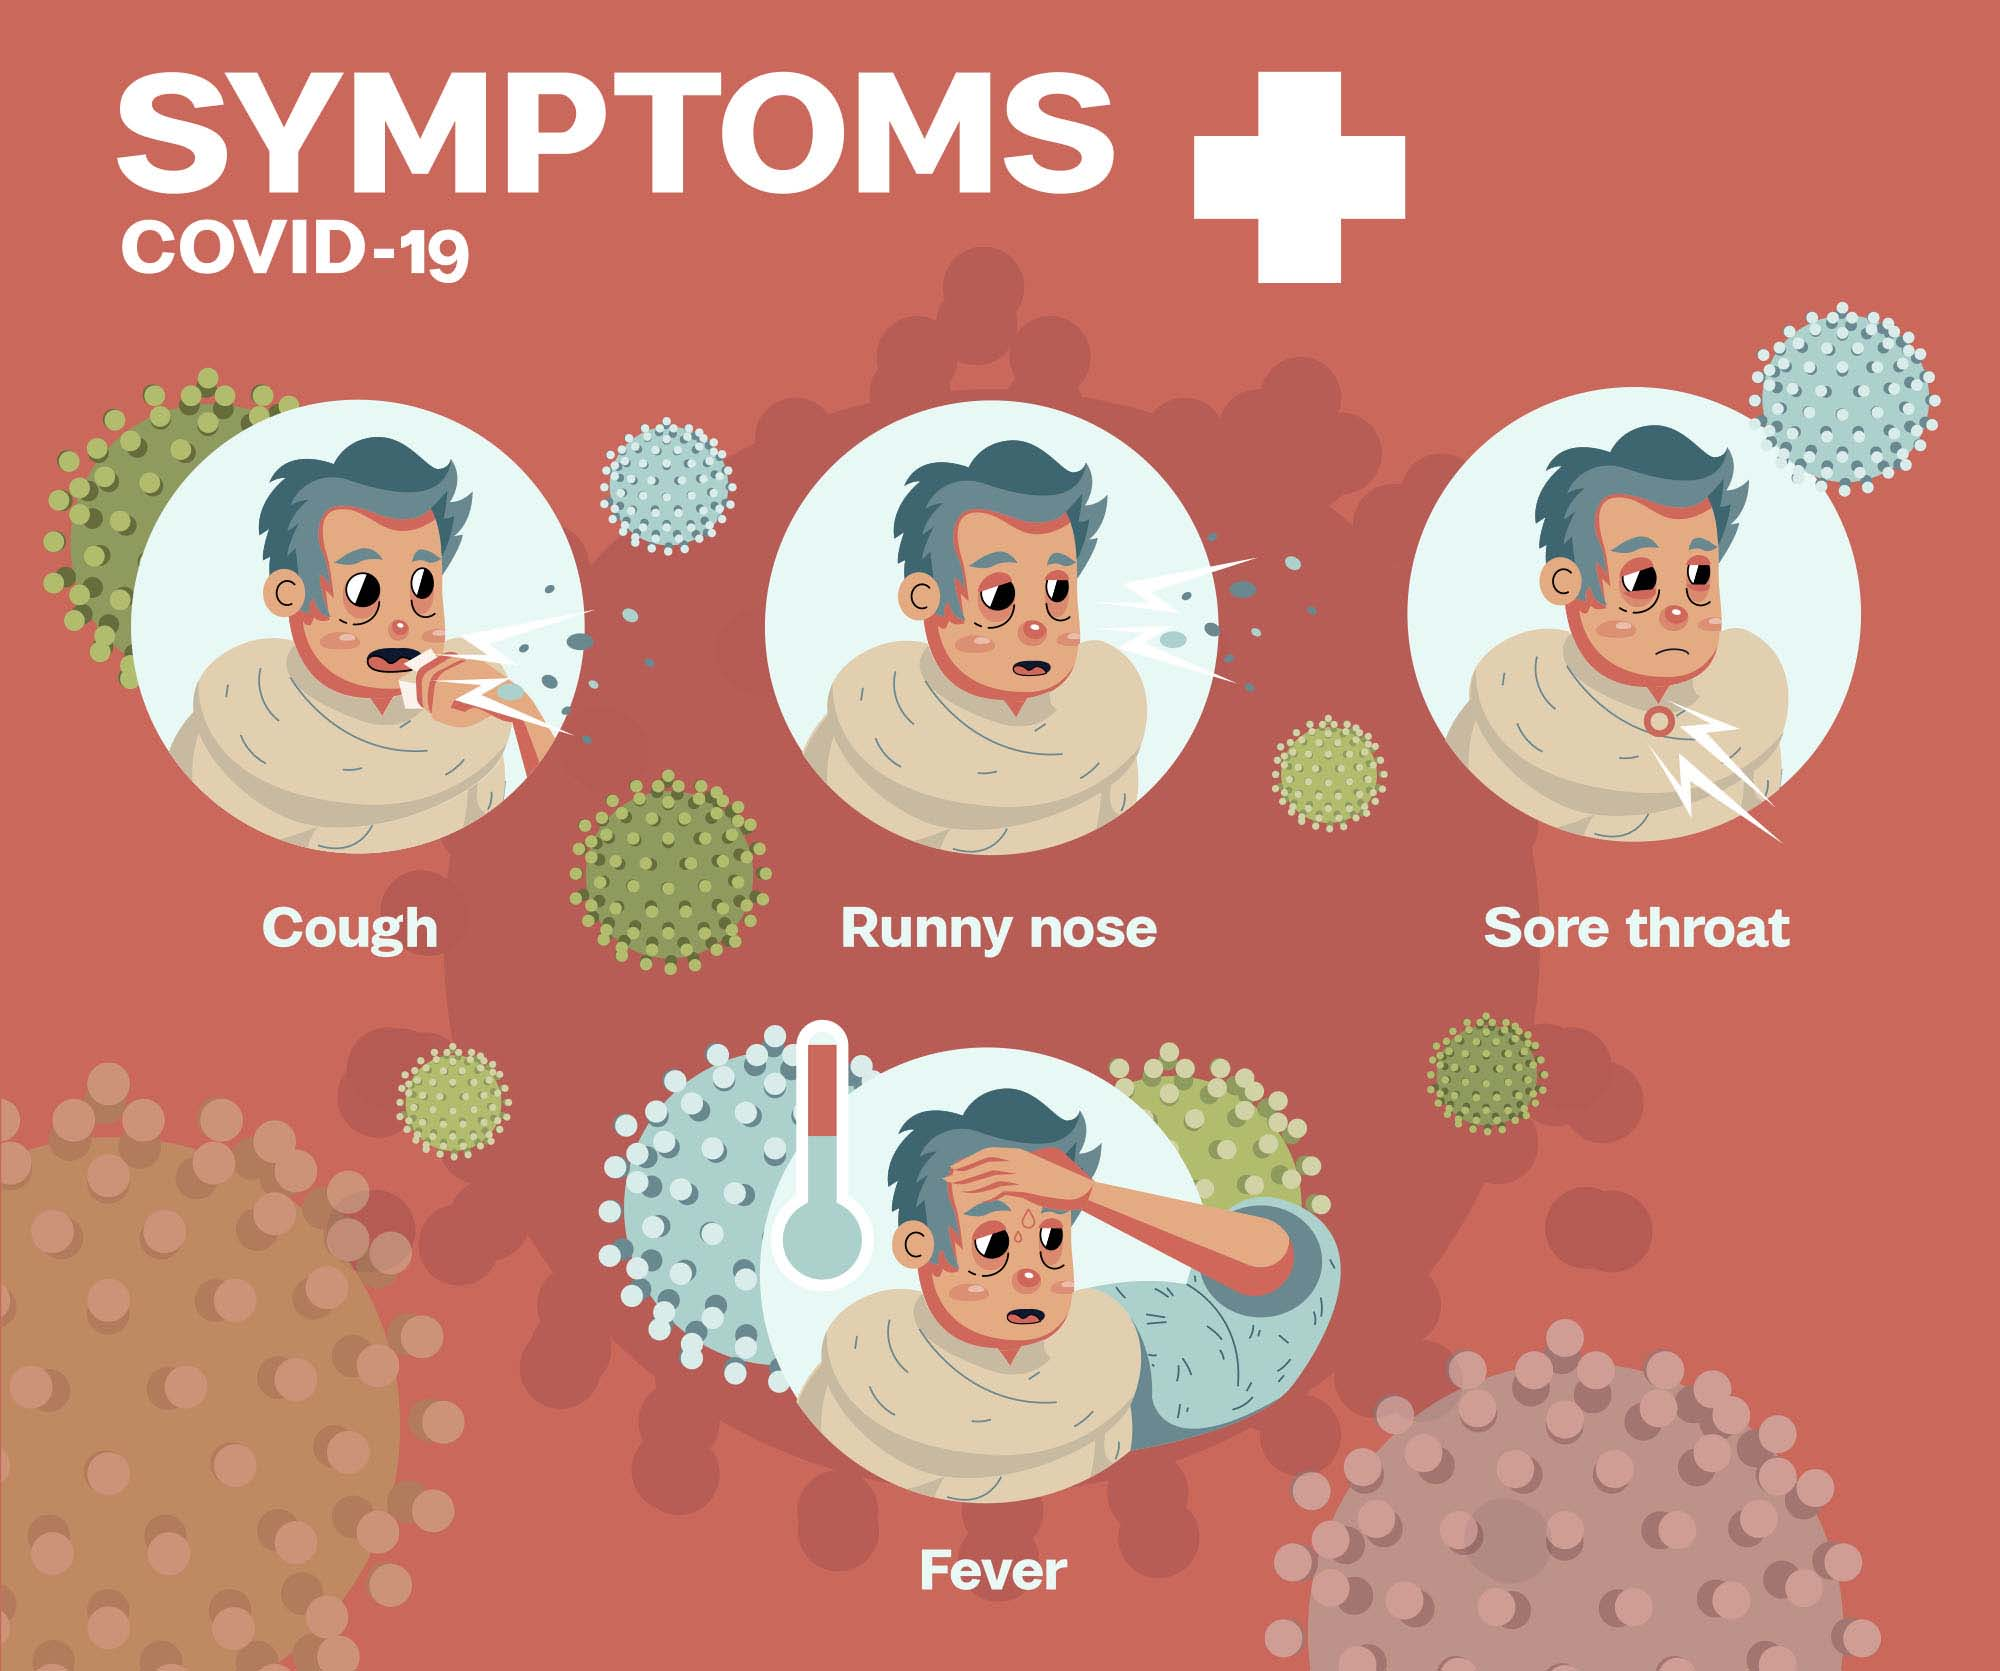 Covid 19 Symptoms Illustration